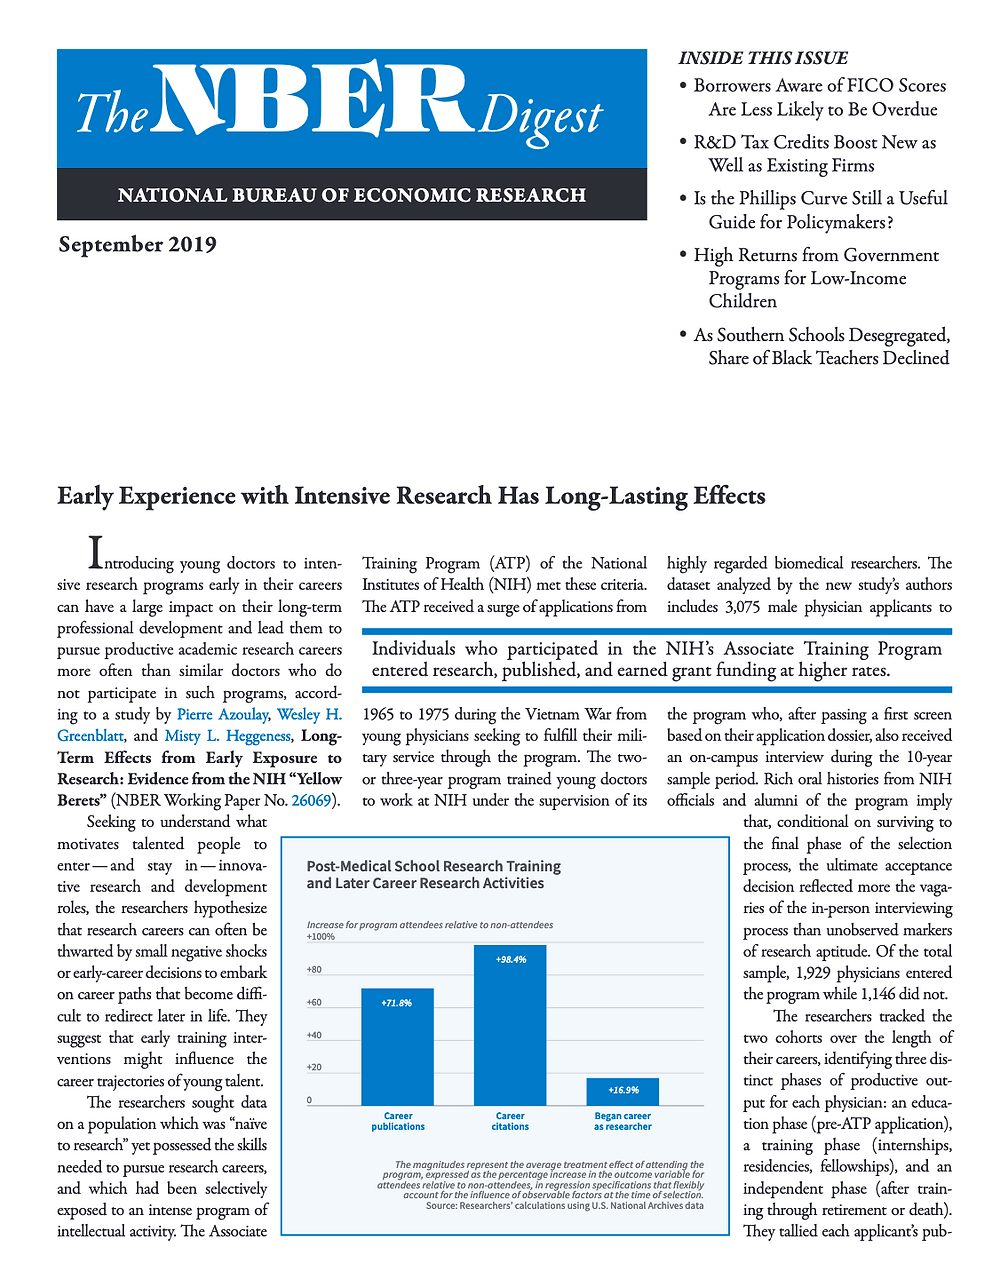 NBER Digest Early Experience with Intensive Research has Long-Lasting Effects